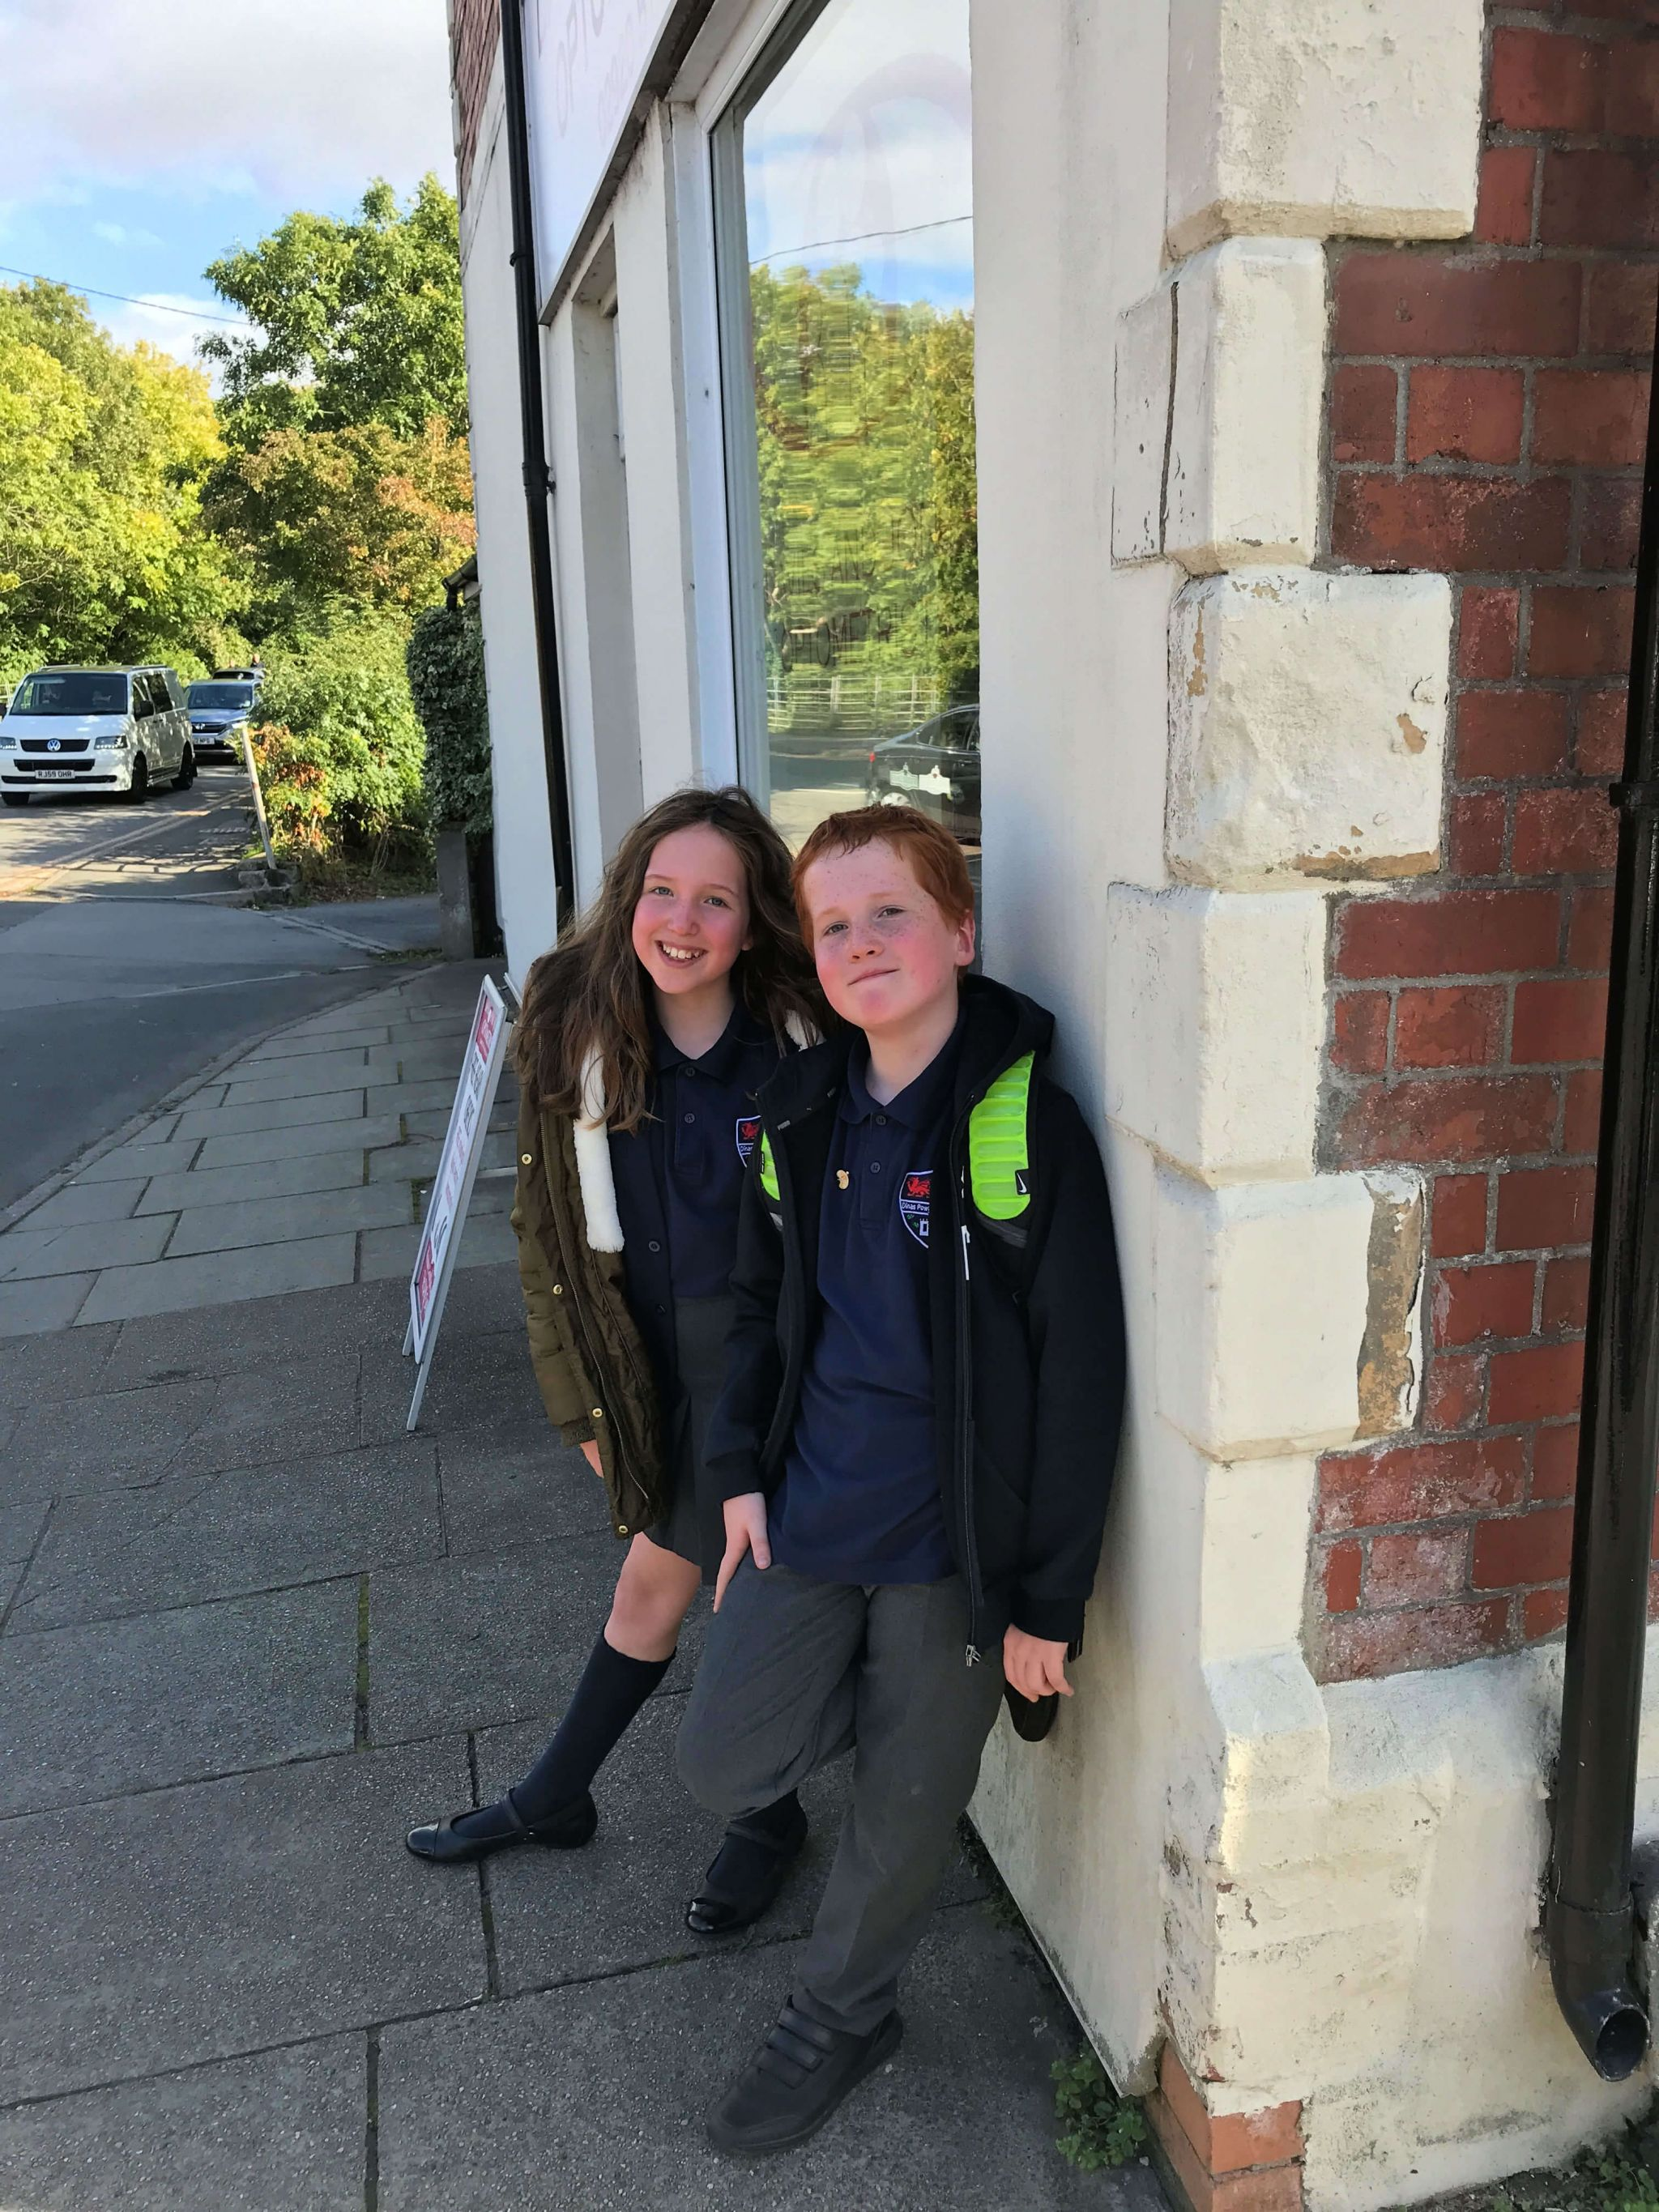 Aviva Drive app - Caitlin and Ieuan on the school run